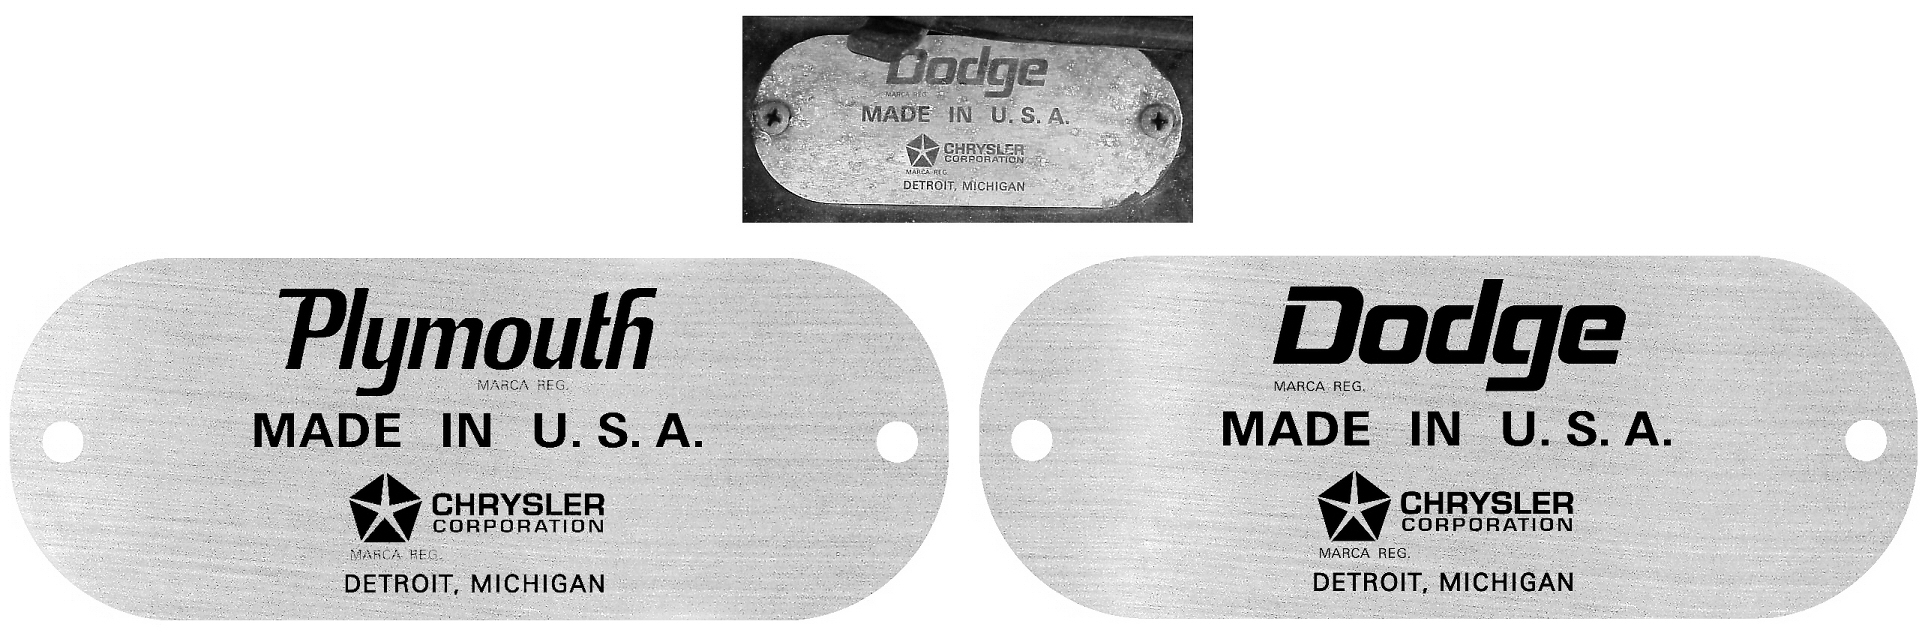 Plymouth, Dodge Fender Export Plate Tags